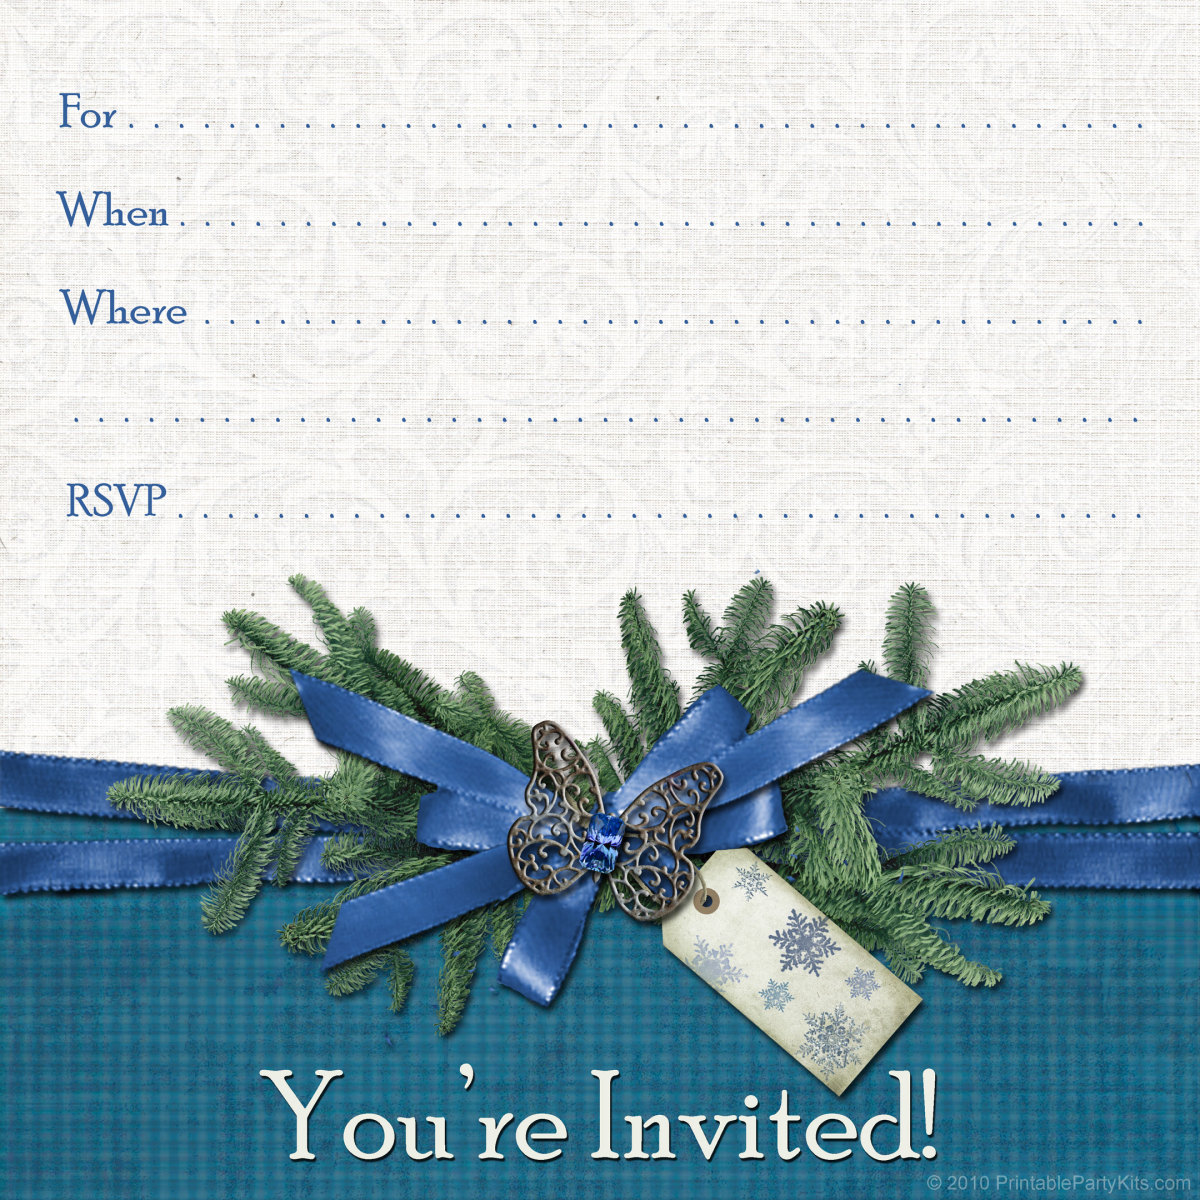 free winter invitation template: snowflake tag and jeweled butterfly pin